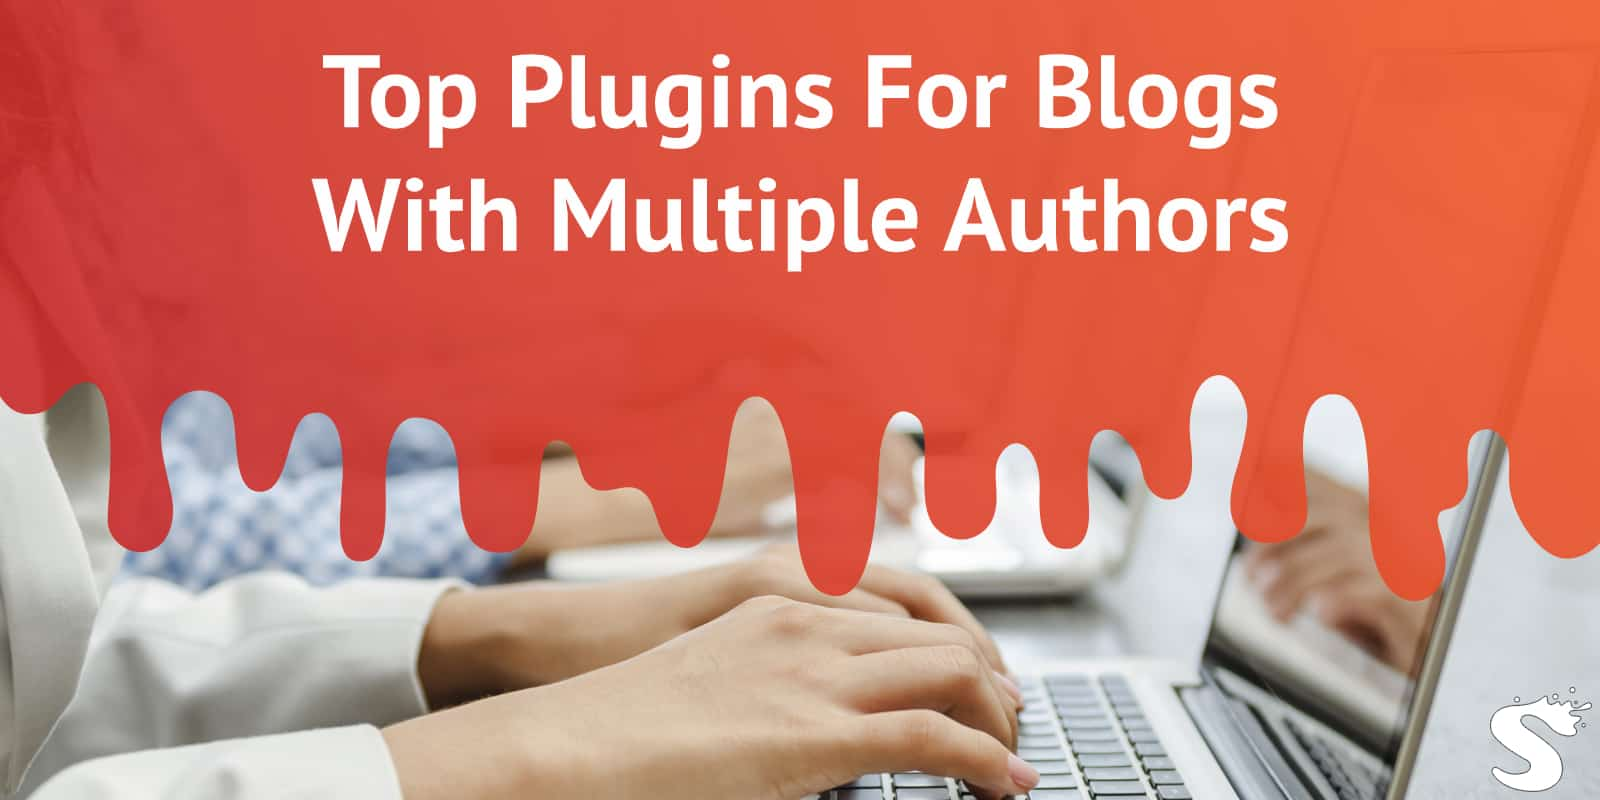 Plugins for Blog With Multiple Authors